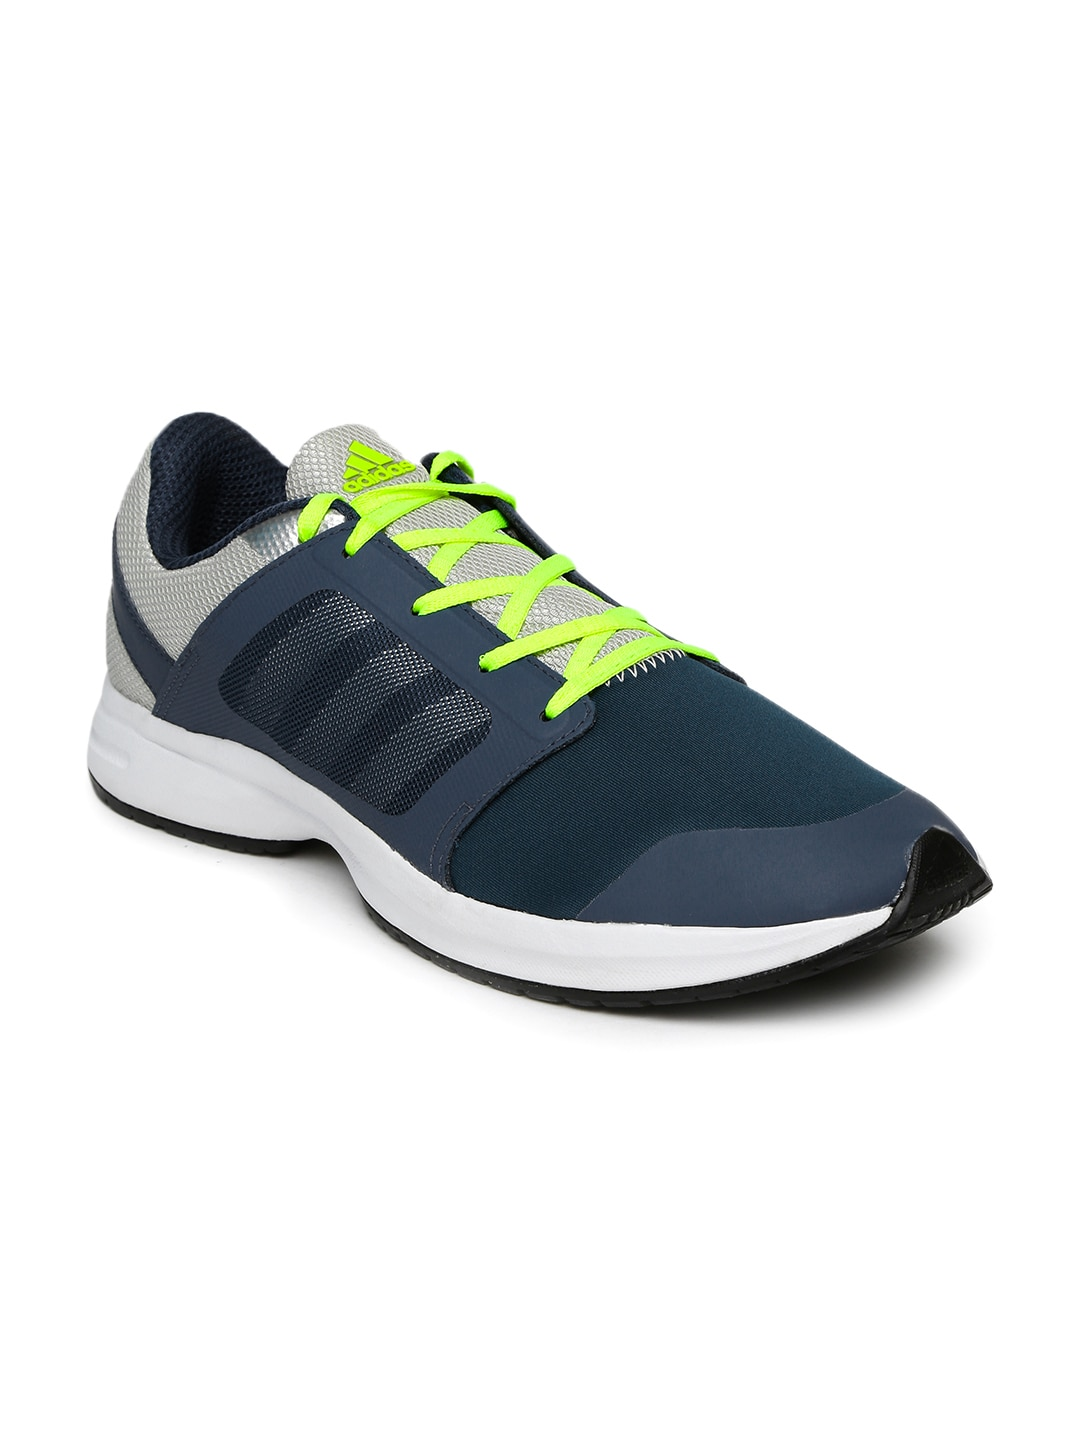 Adidas Men Navy Kray 1.0 Running Shoes